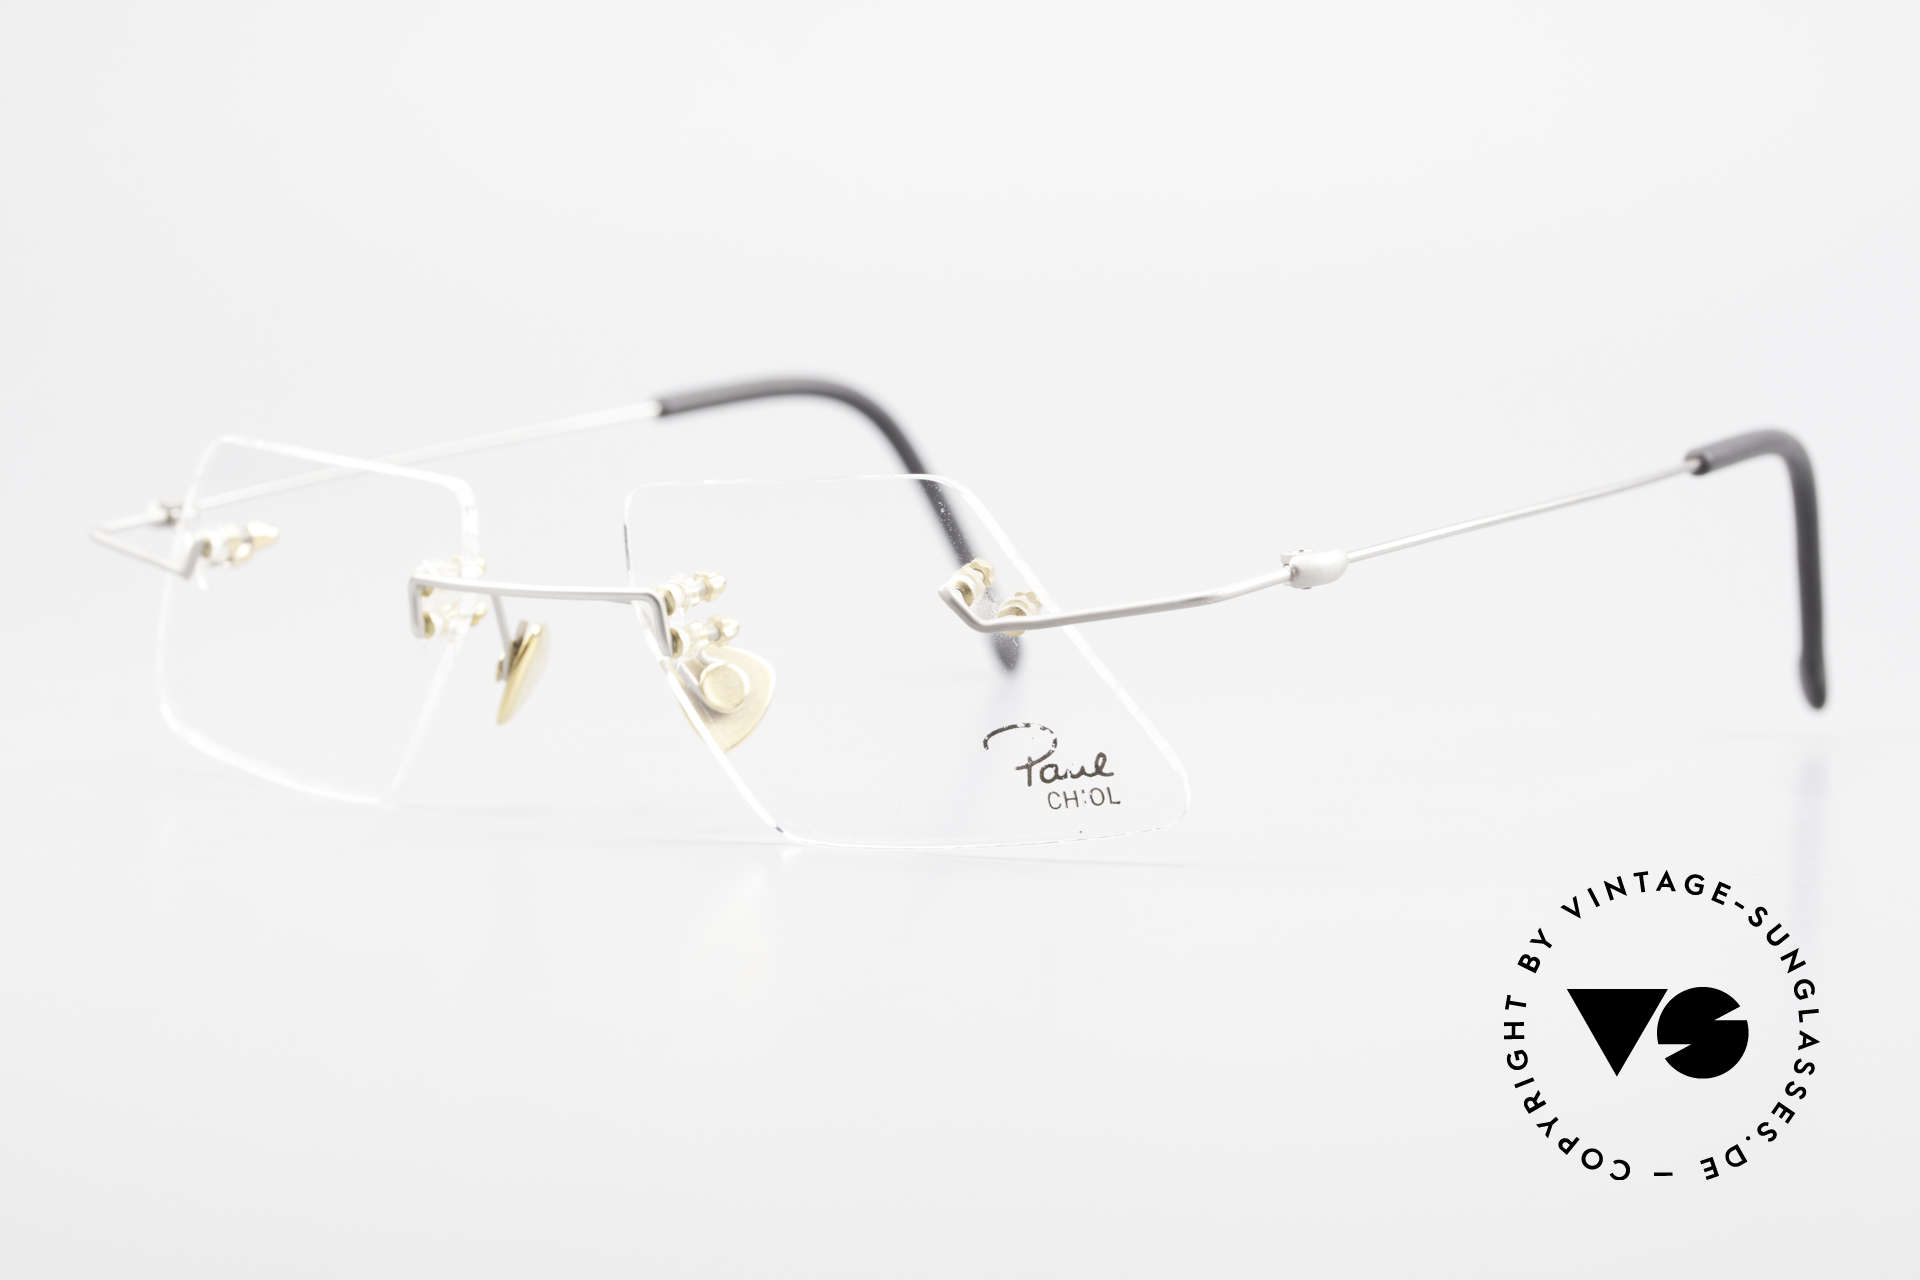 Paul Chiol 2001 Unique Rimless Eyeglasses, filigree & cleverly devised design; simply chichi, Made for Men and Women